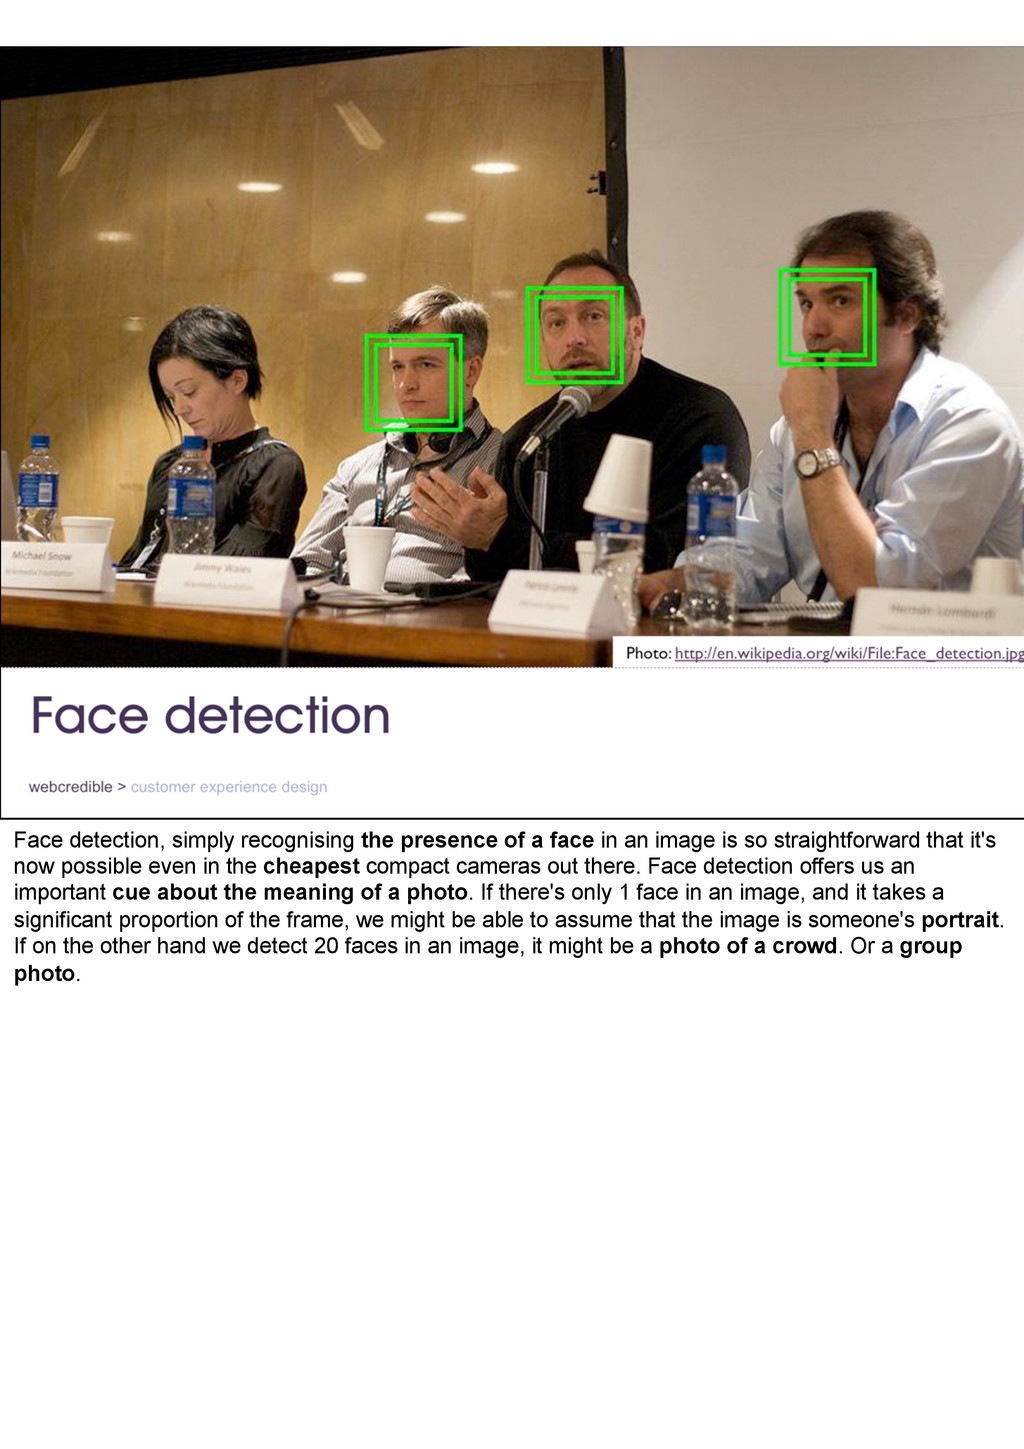 Face detection, simply recognising the presence...